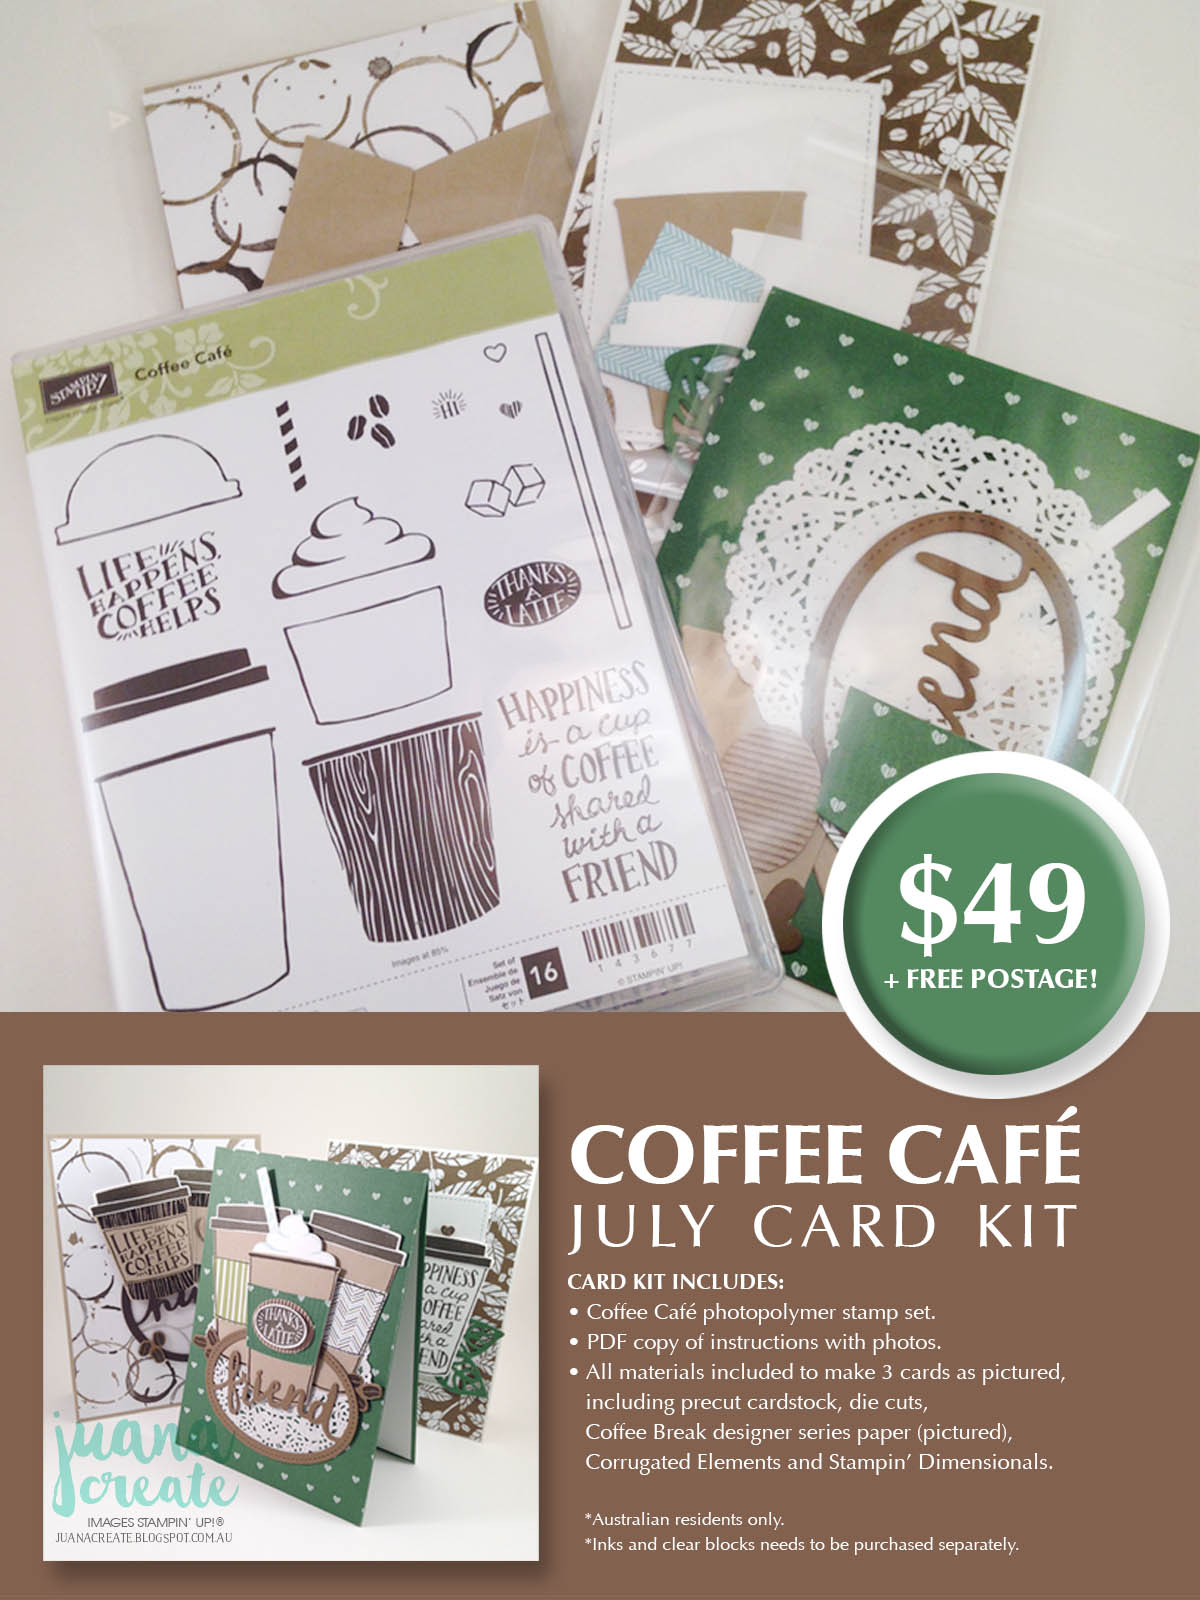 Coffee Café July Card Kit